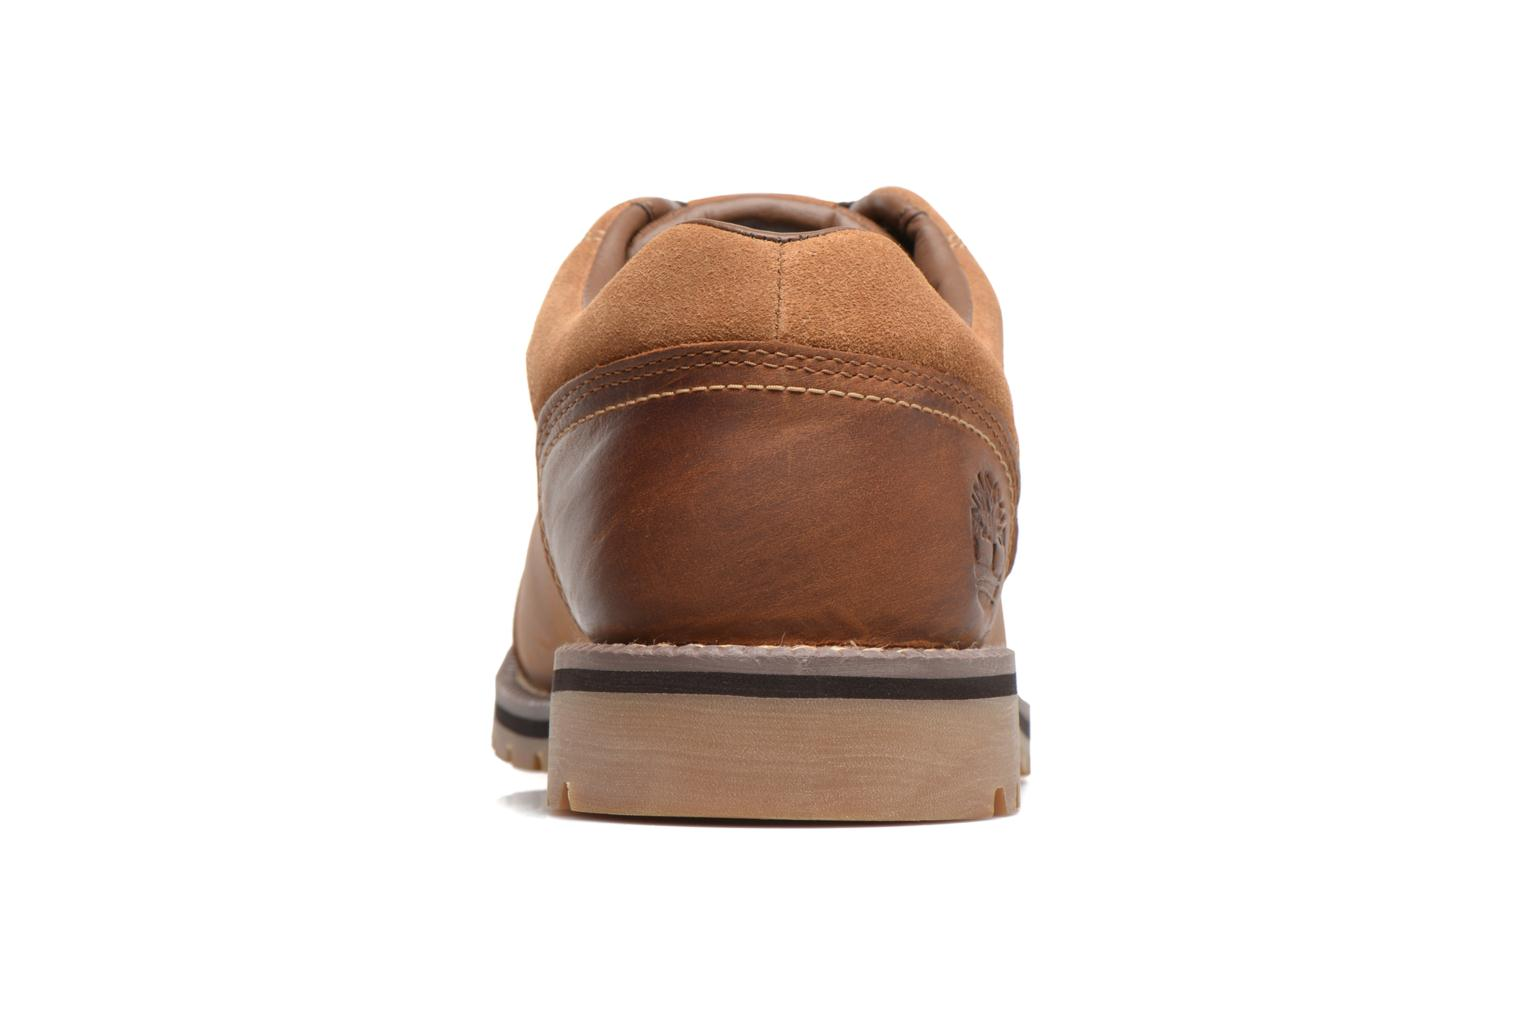 Larchmont Oxford Oakwood Brown FG and Suede